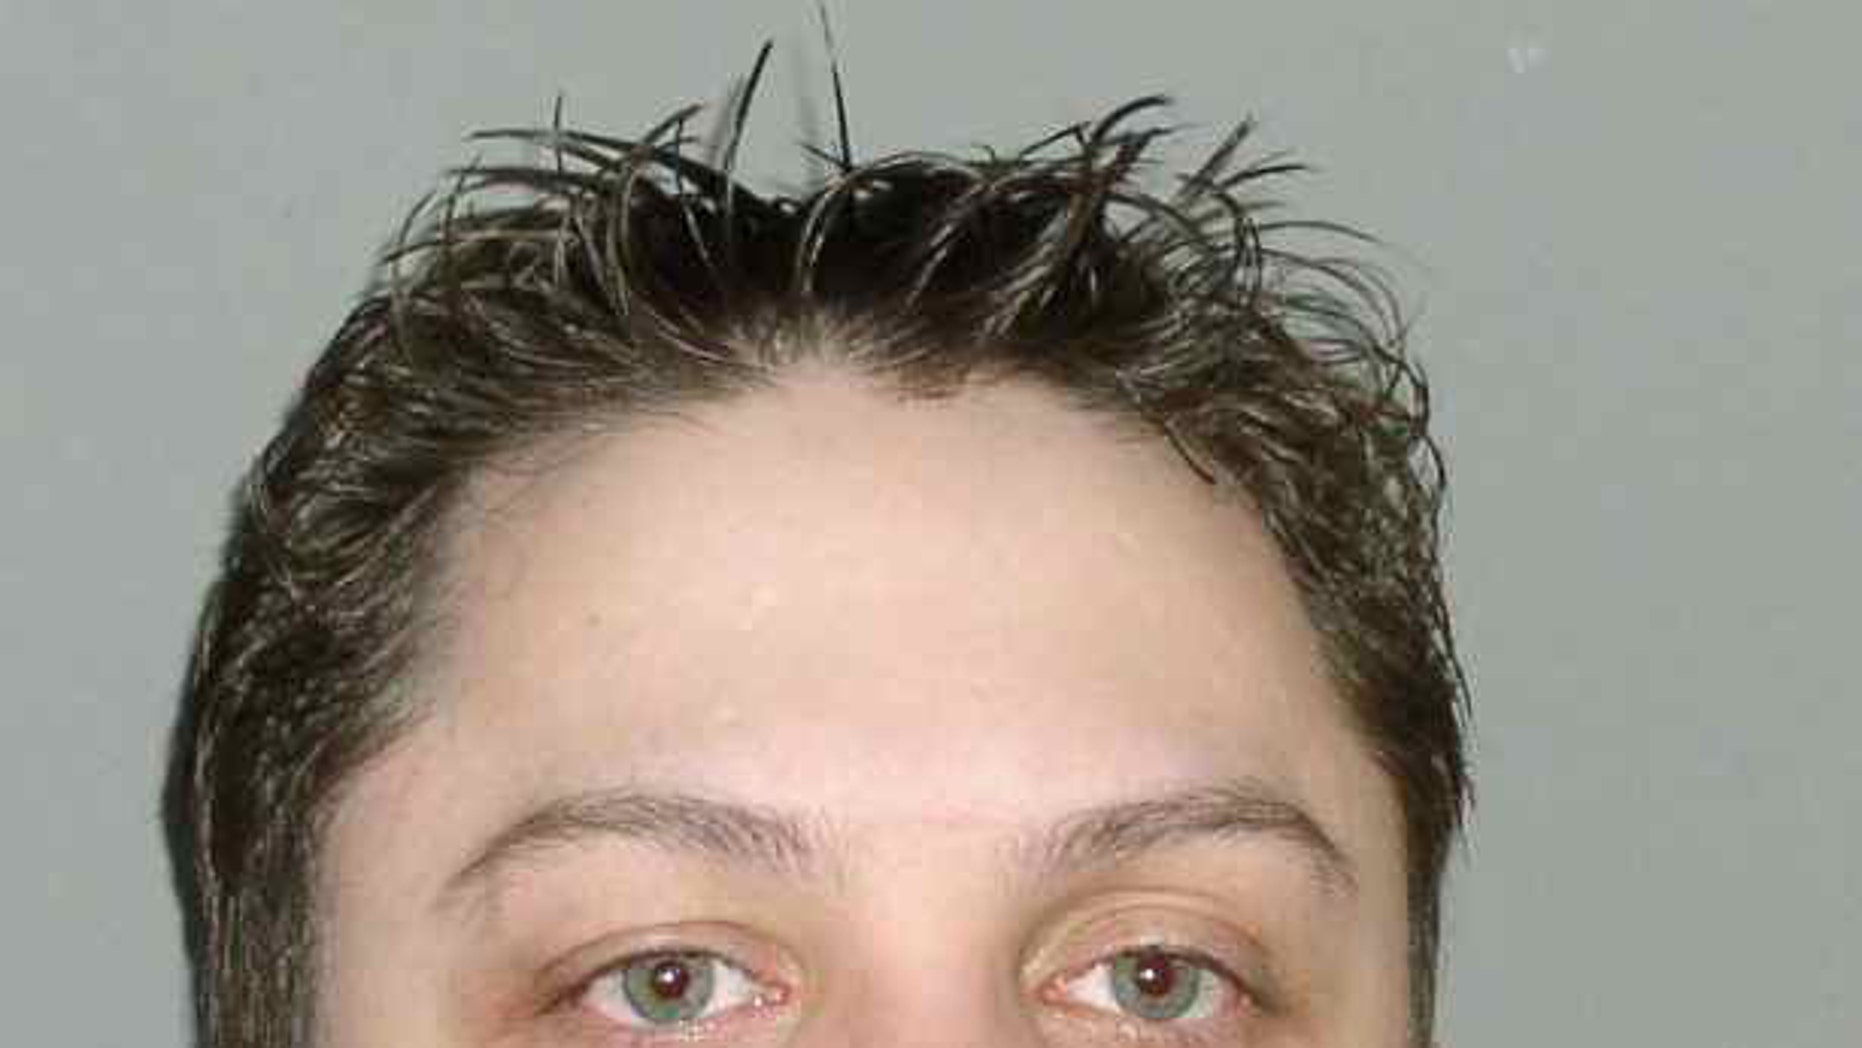 FILE - In this undated photo provided by the Federal Bureau of Investigation via The Anchorage Daily News, Joshua Wade is shown. Wade is spending life behind bars after admitting to killing two Anchorage women. Anchorage police and federal authorities have scheduled a Friday, June 20, 2014 morning news conference to discuss whether Wade may have caused the deaths of persons in addition to Della Brown and Mindy Schloss.  (AP Photo/FBI via The Anchorage Daily News)